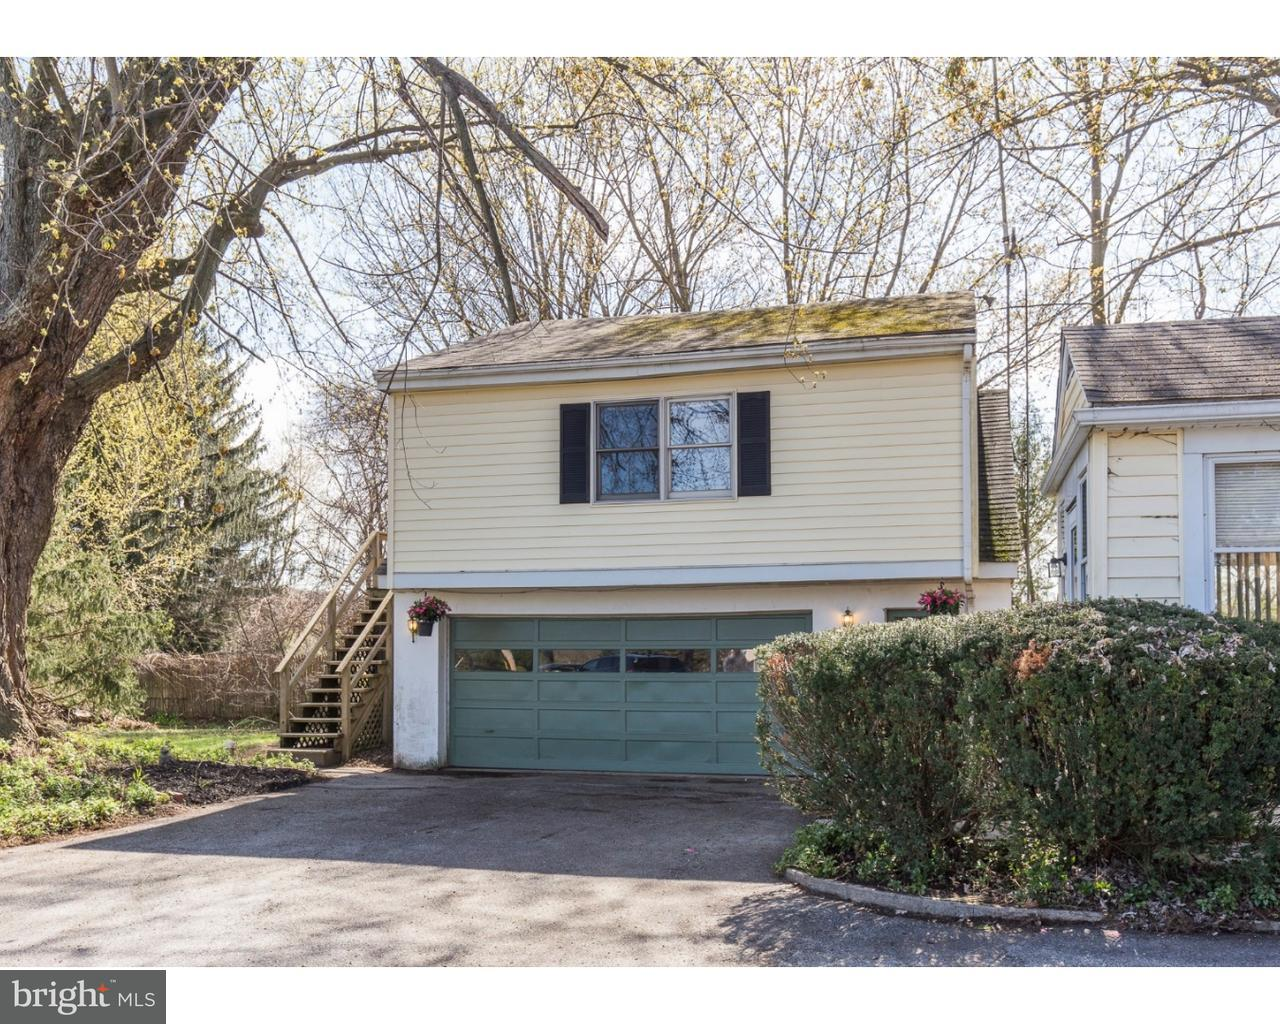 1931 VALLEY RD, POMEROY - Listed at $230,000, POMEROY